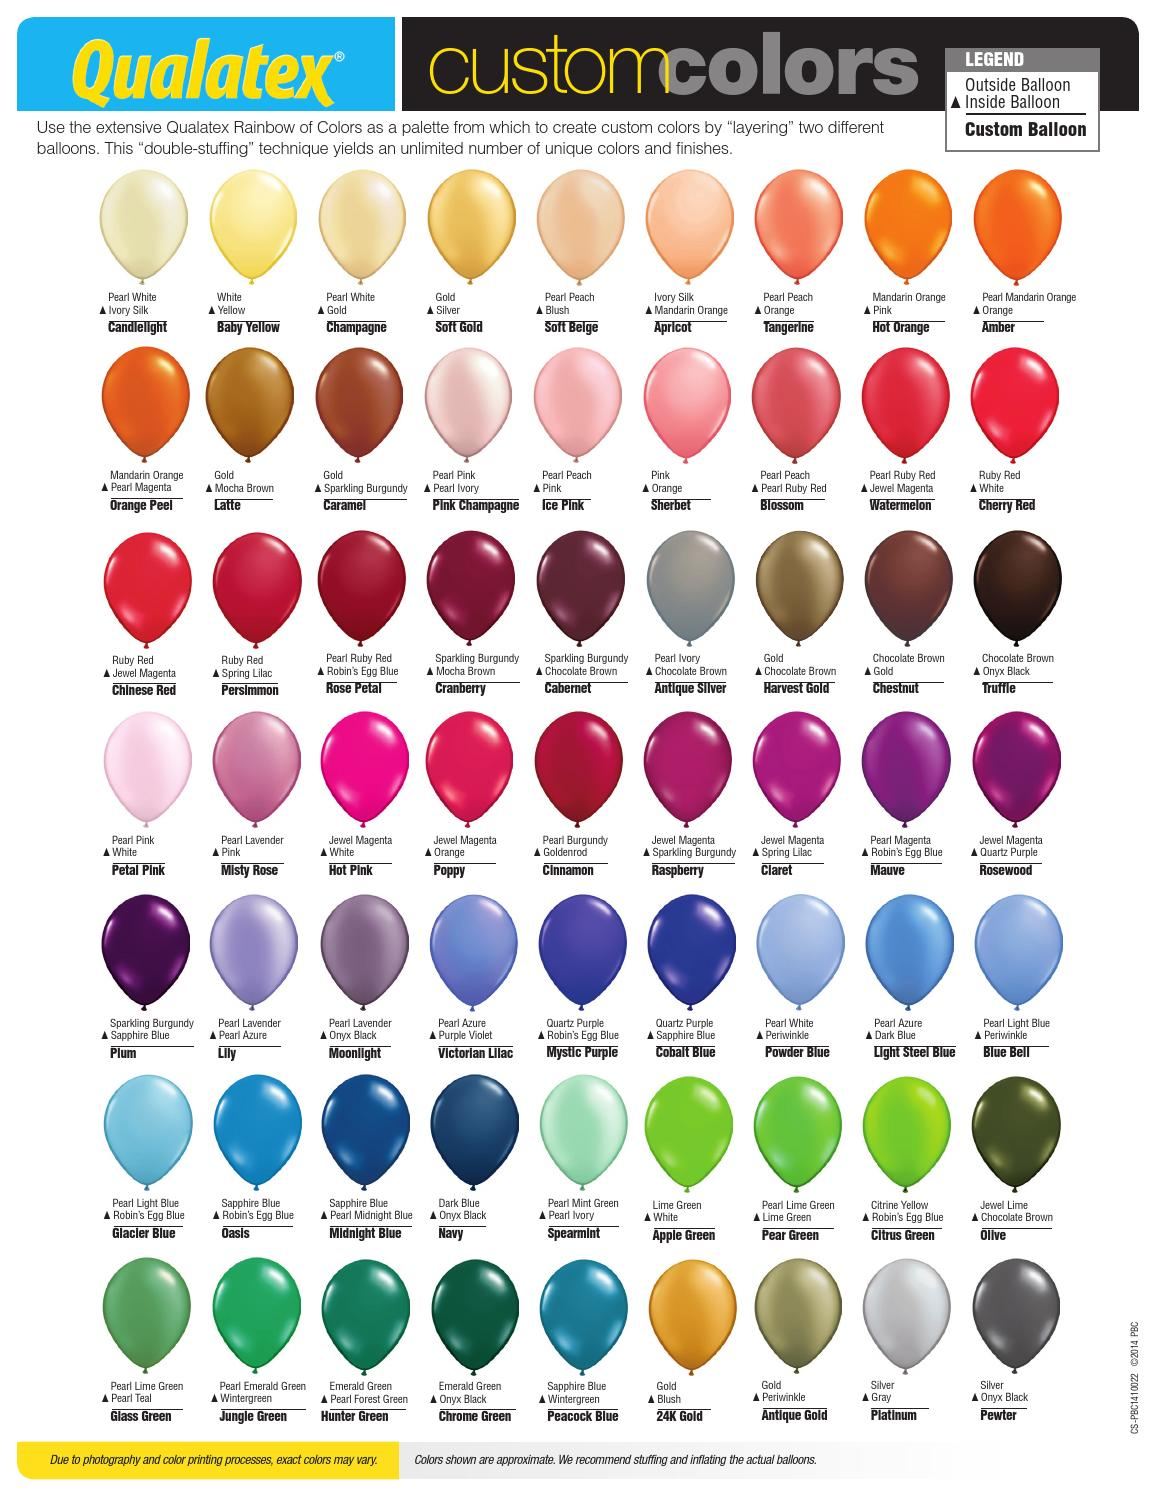 Us custom colors chart 2015 by pioneer balloon company issuu geenschuldenfo Image collections